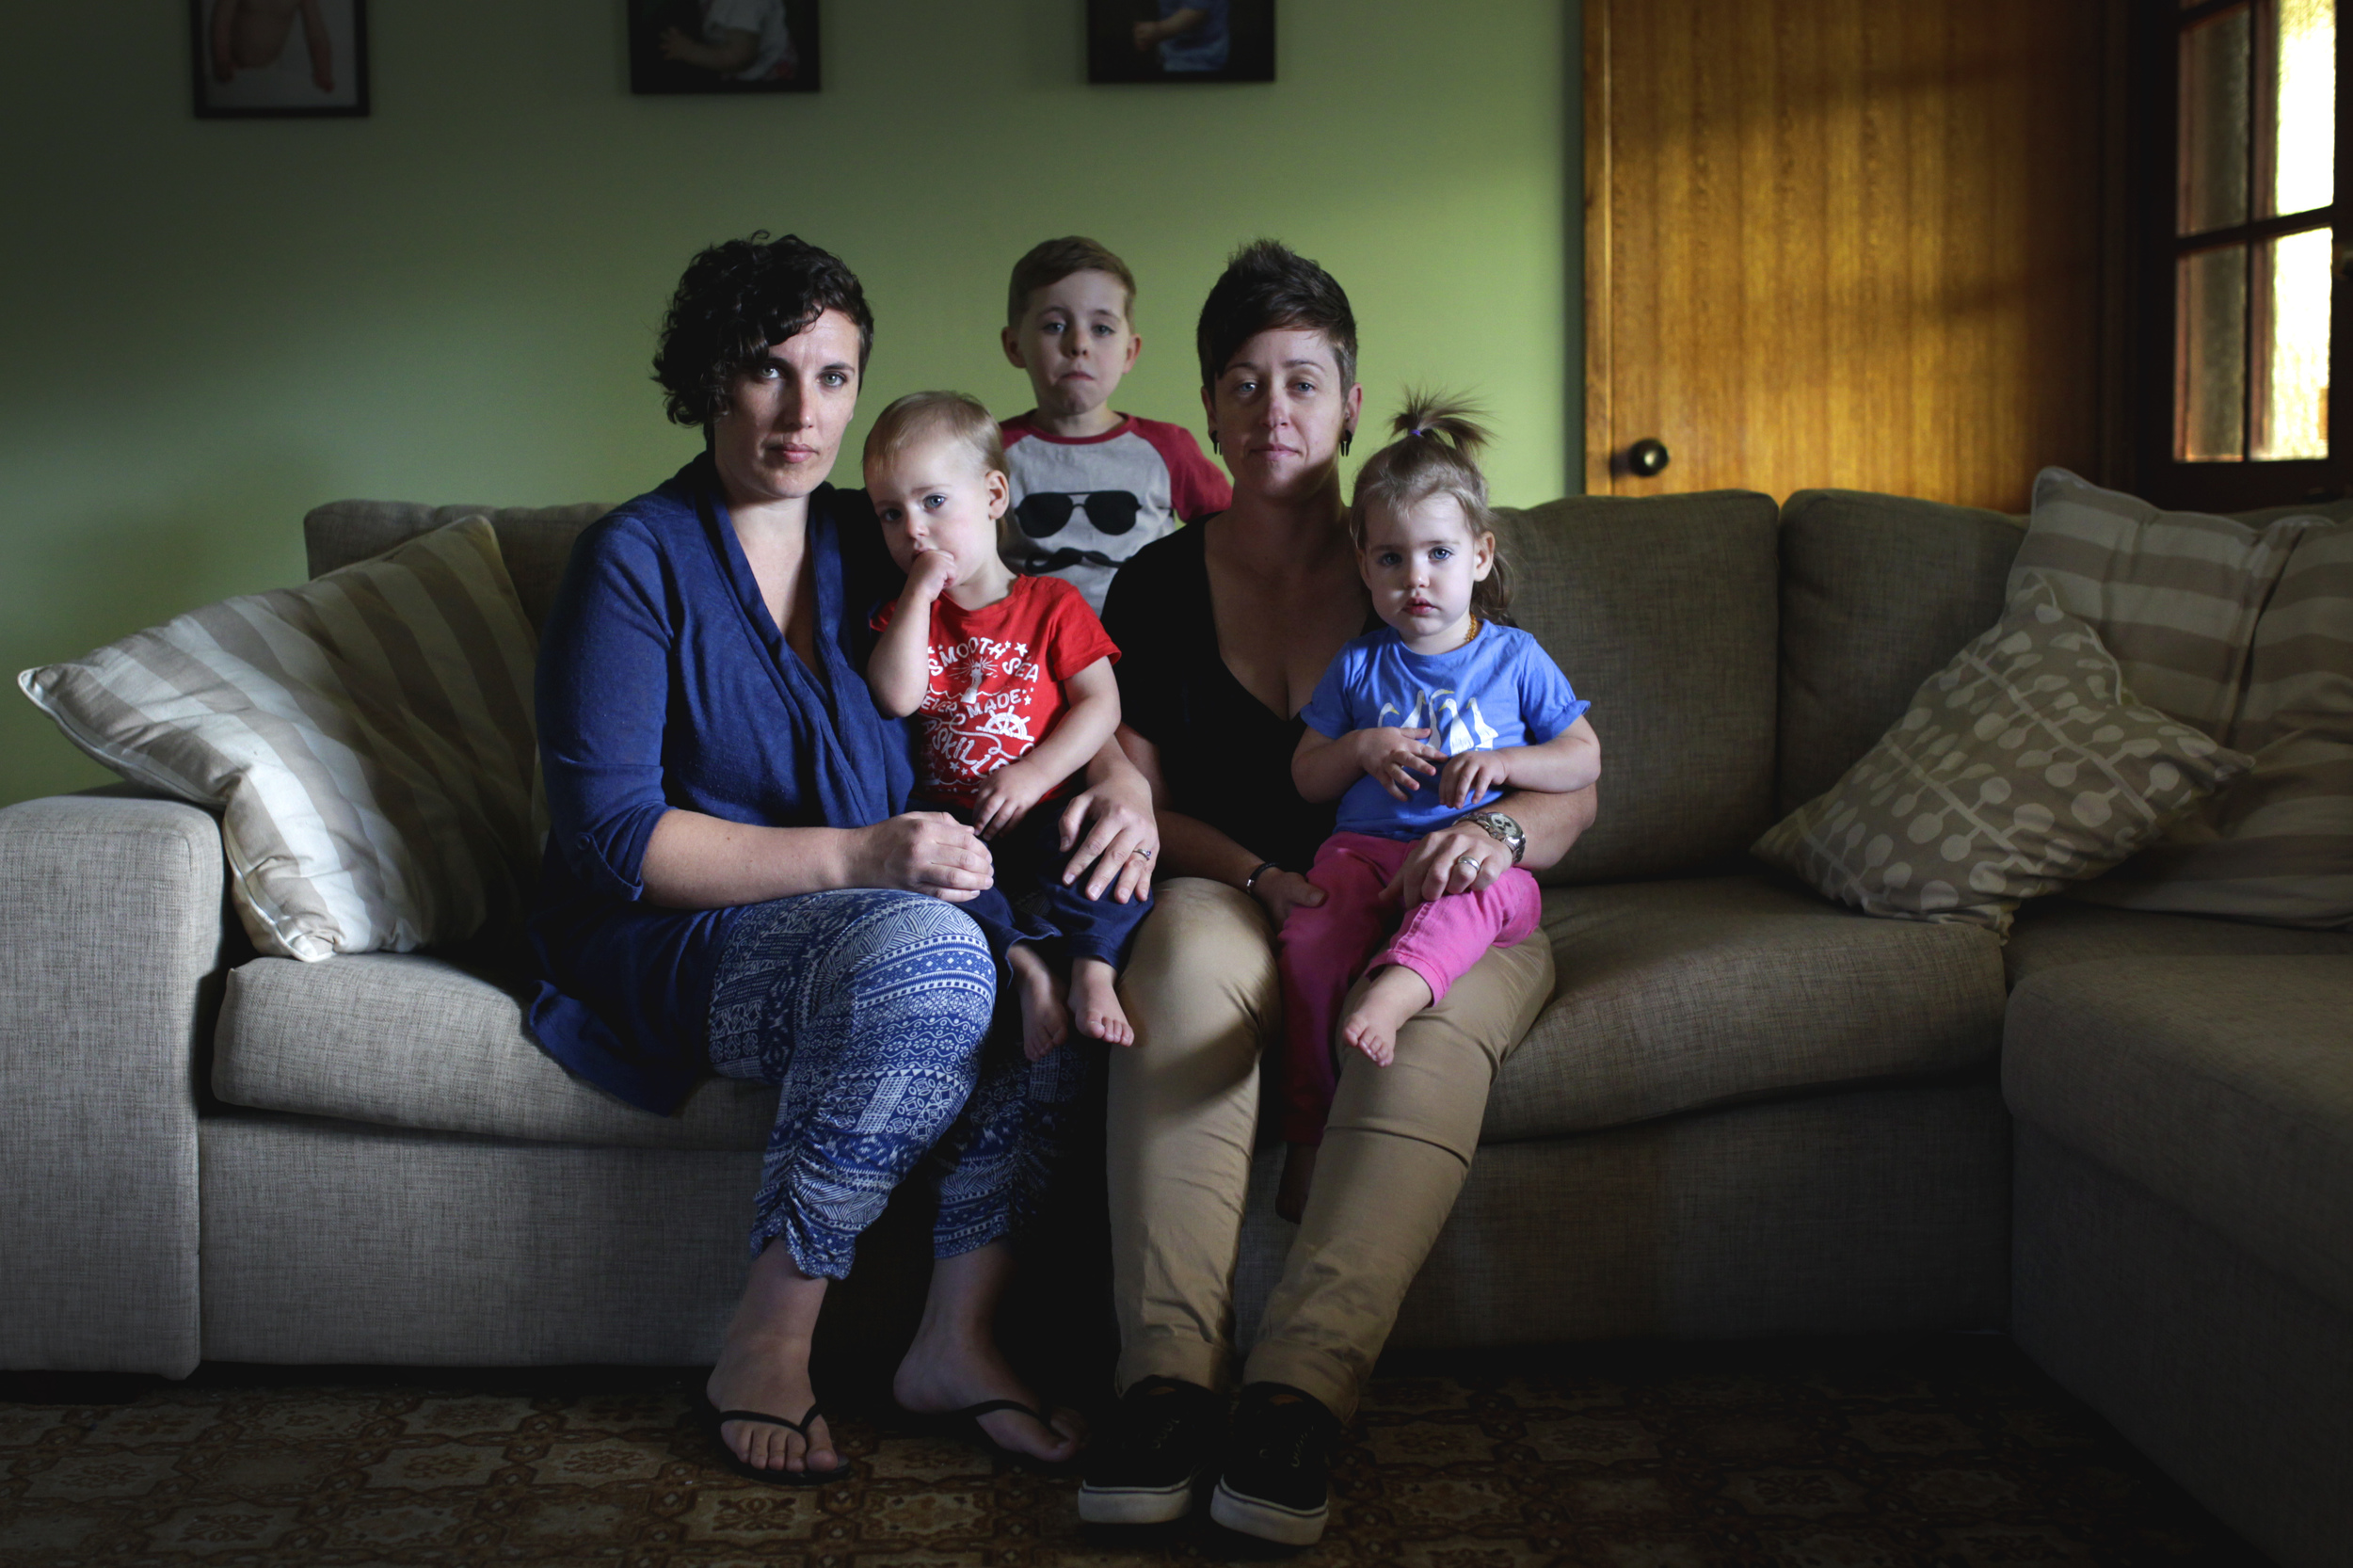 Mel and Liz, pictured with their twins Zali and Kale, 19 months, and son Bodhi, 5, are calling for Macarthur MP Russell Matheson to reverse his opposition to gay marriage.